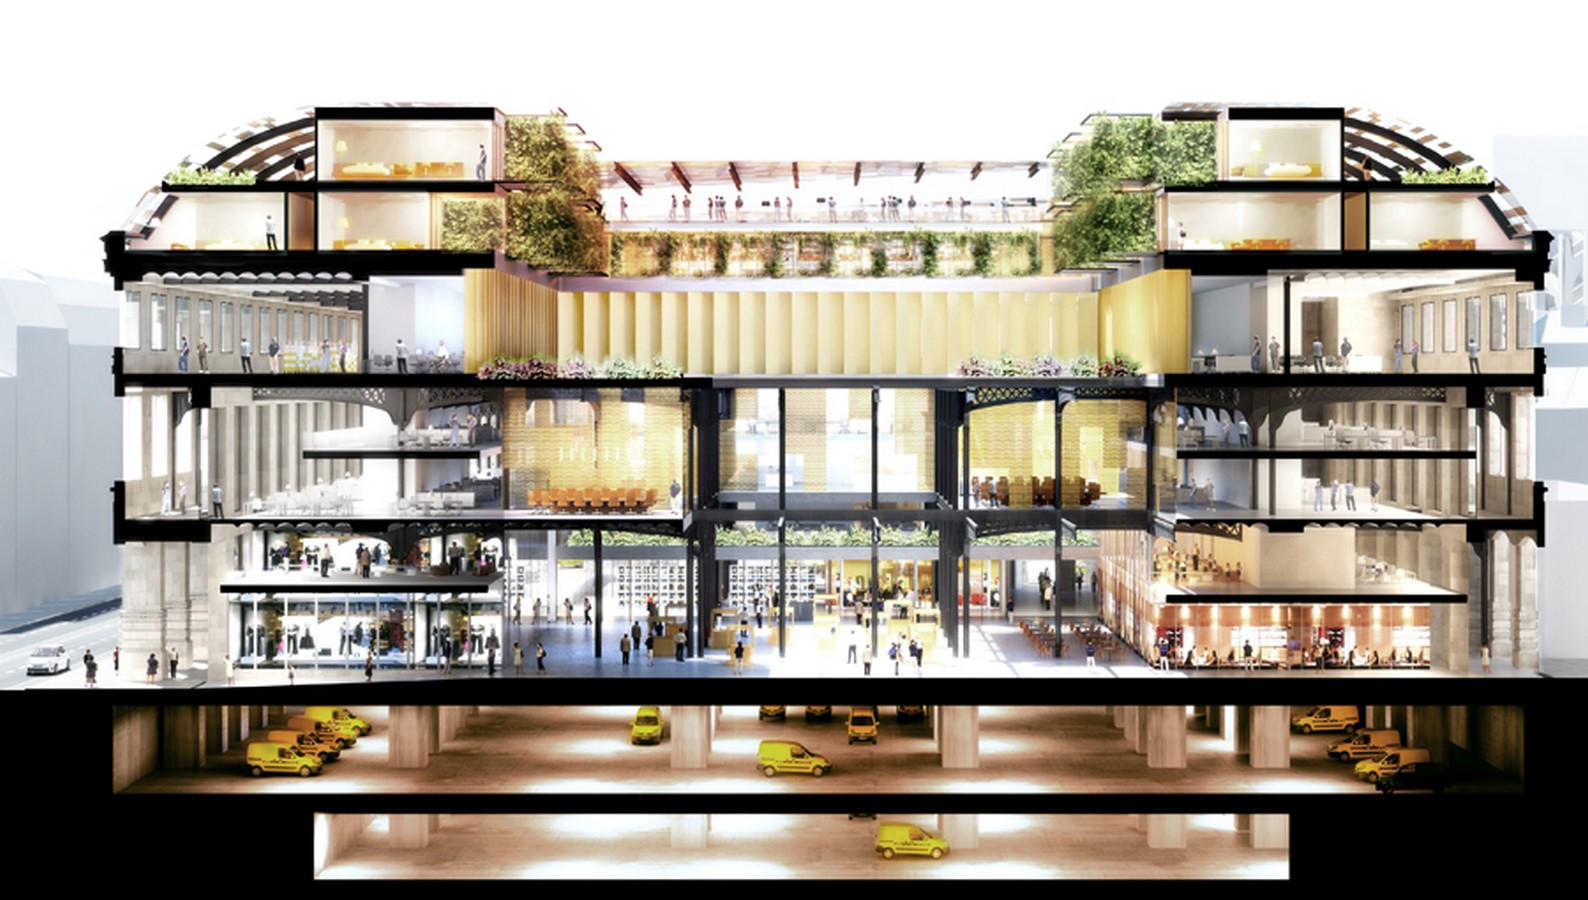 Paris' Industrial Post Office Building converted into A Mixed-Use Block by Dominique Perrault Architecture - Sheet6